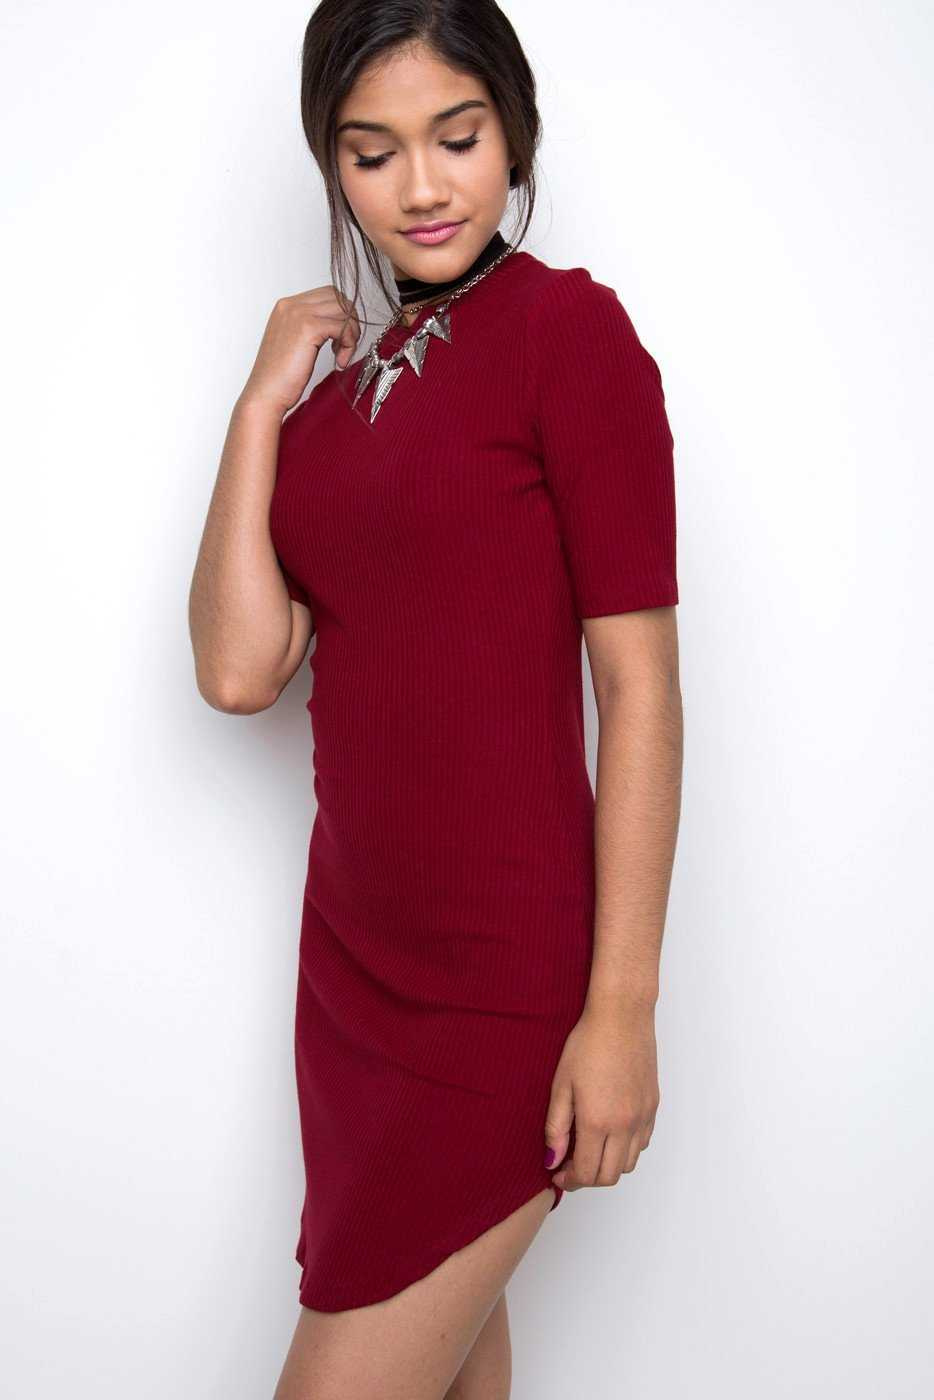 Dresses - Lala Ribbed Dress - Burgundy